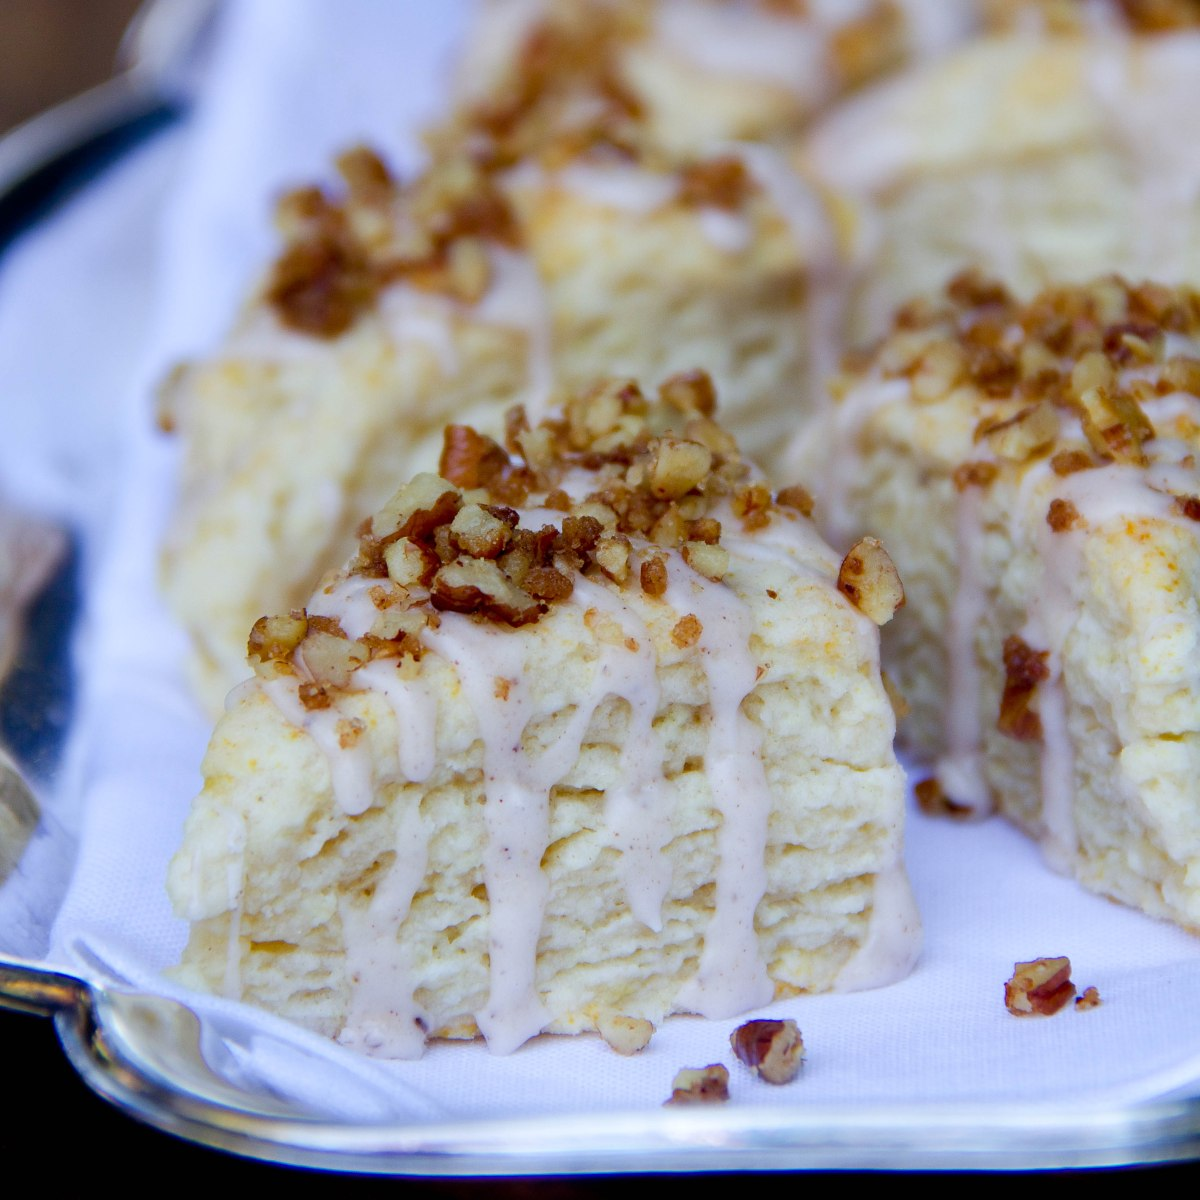 Banana Scones with Spiced Pecan Glaze